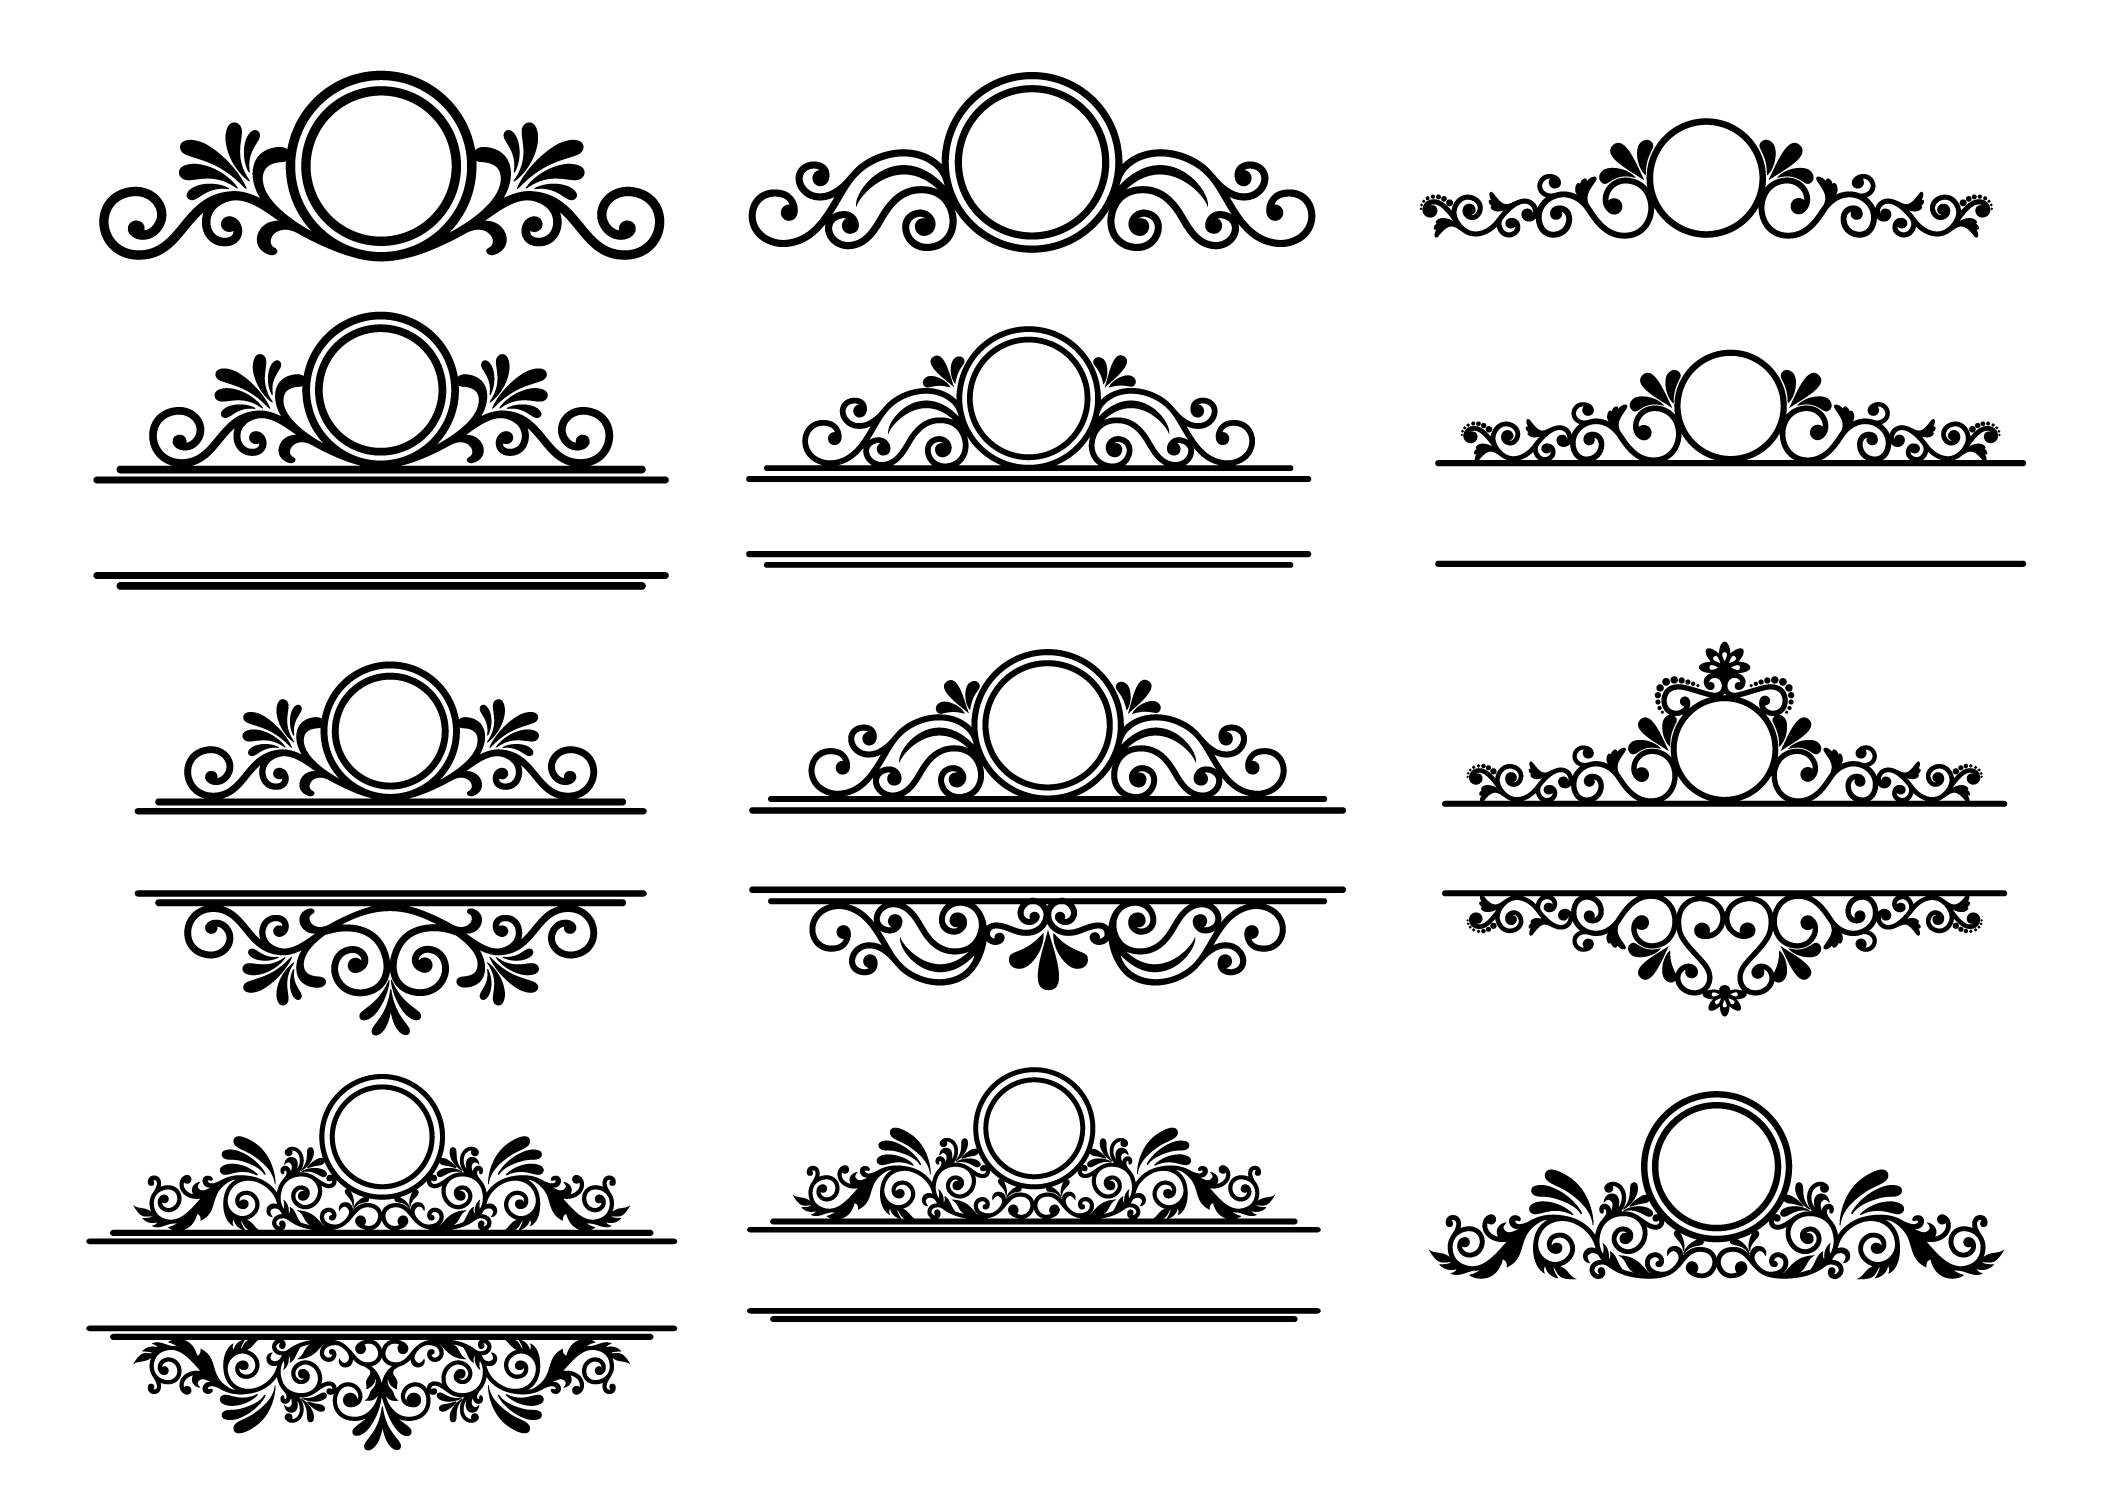 mailbox decal svg #984, Download drawings